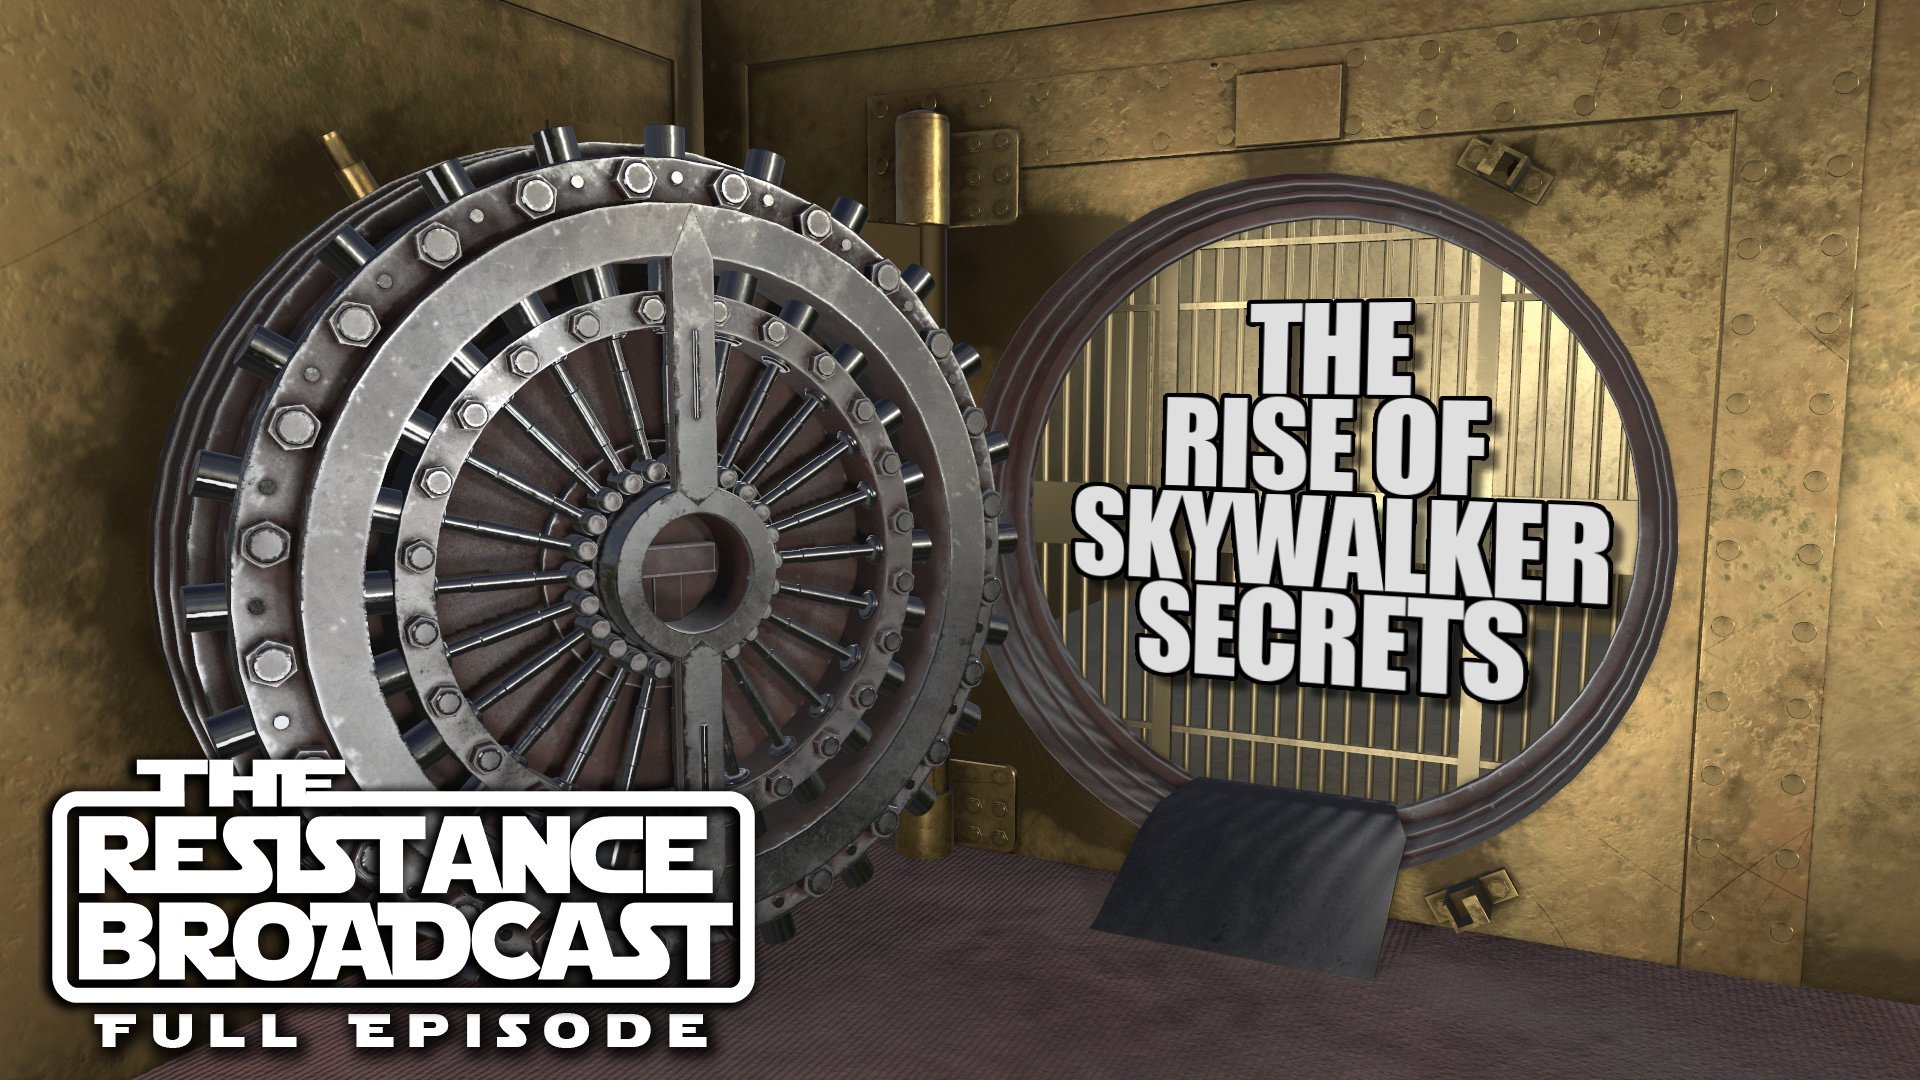 The Resistance Broadcast - Have Star Wars Projects Become